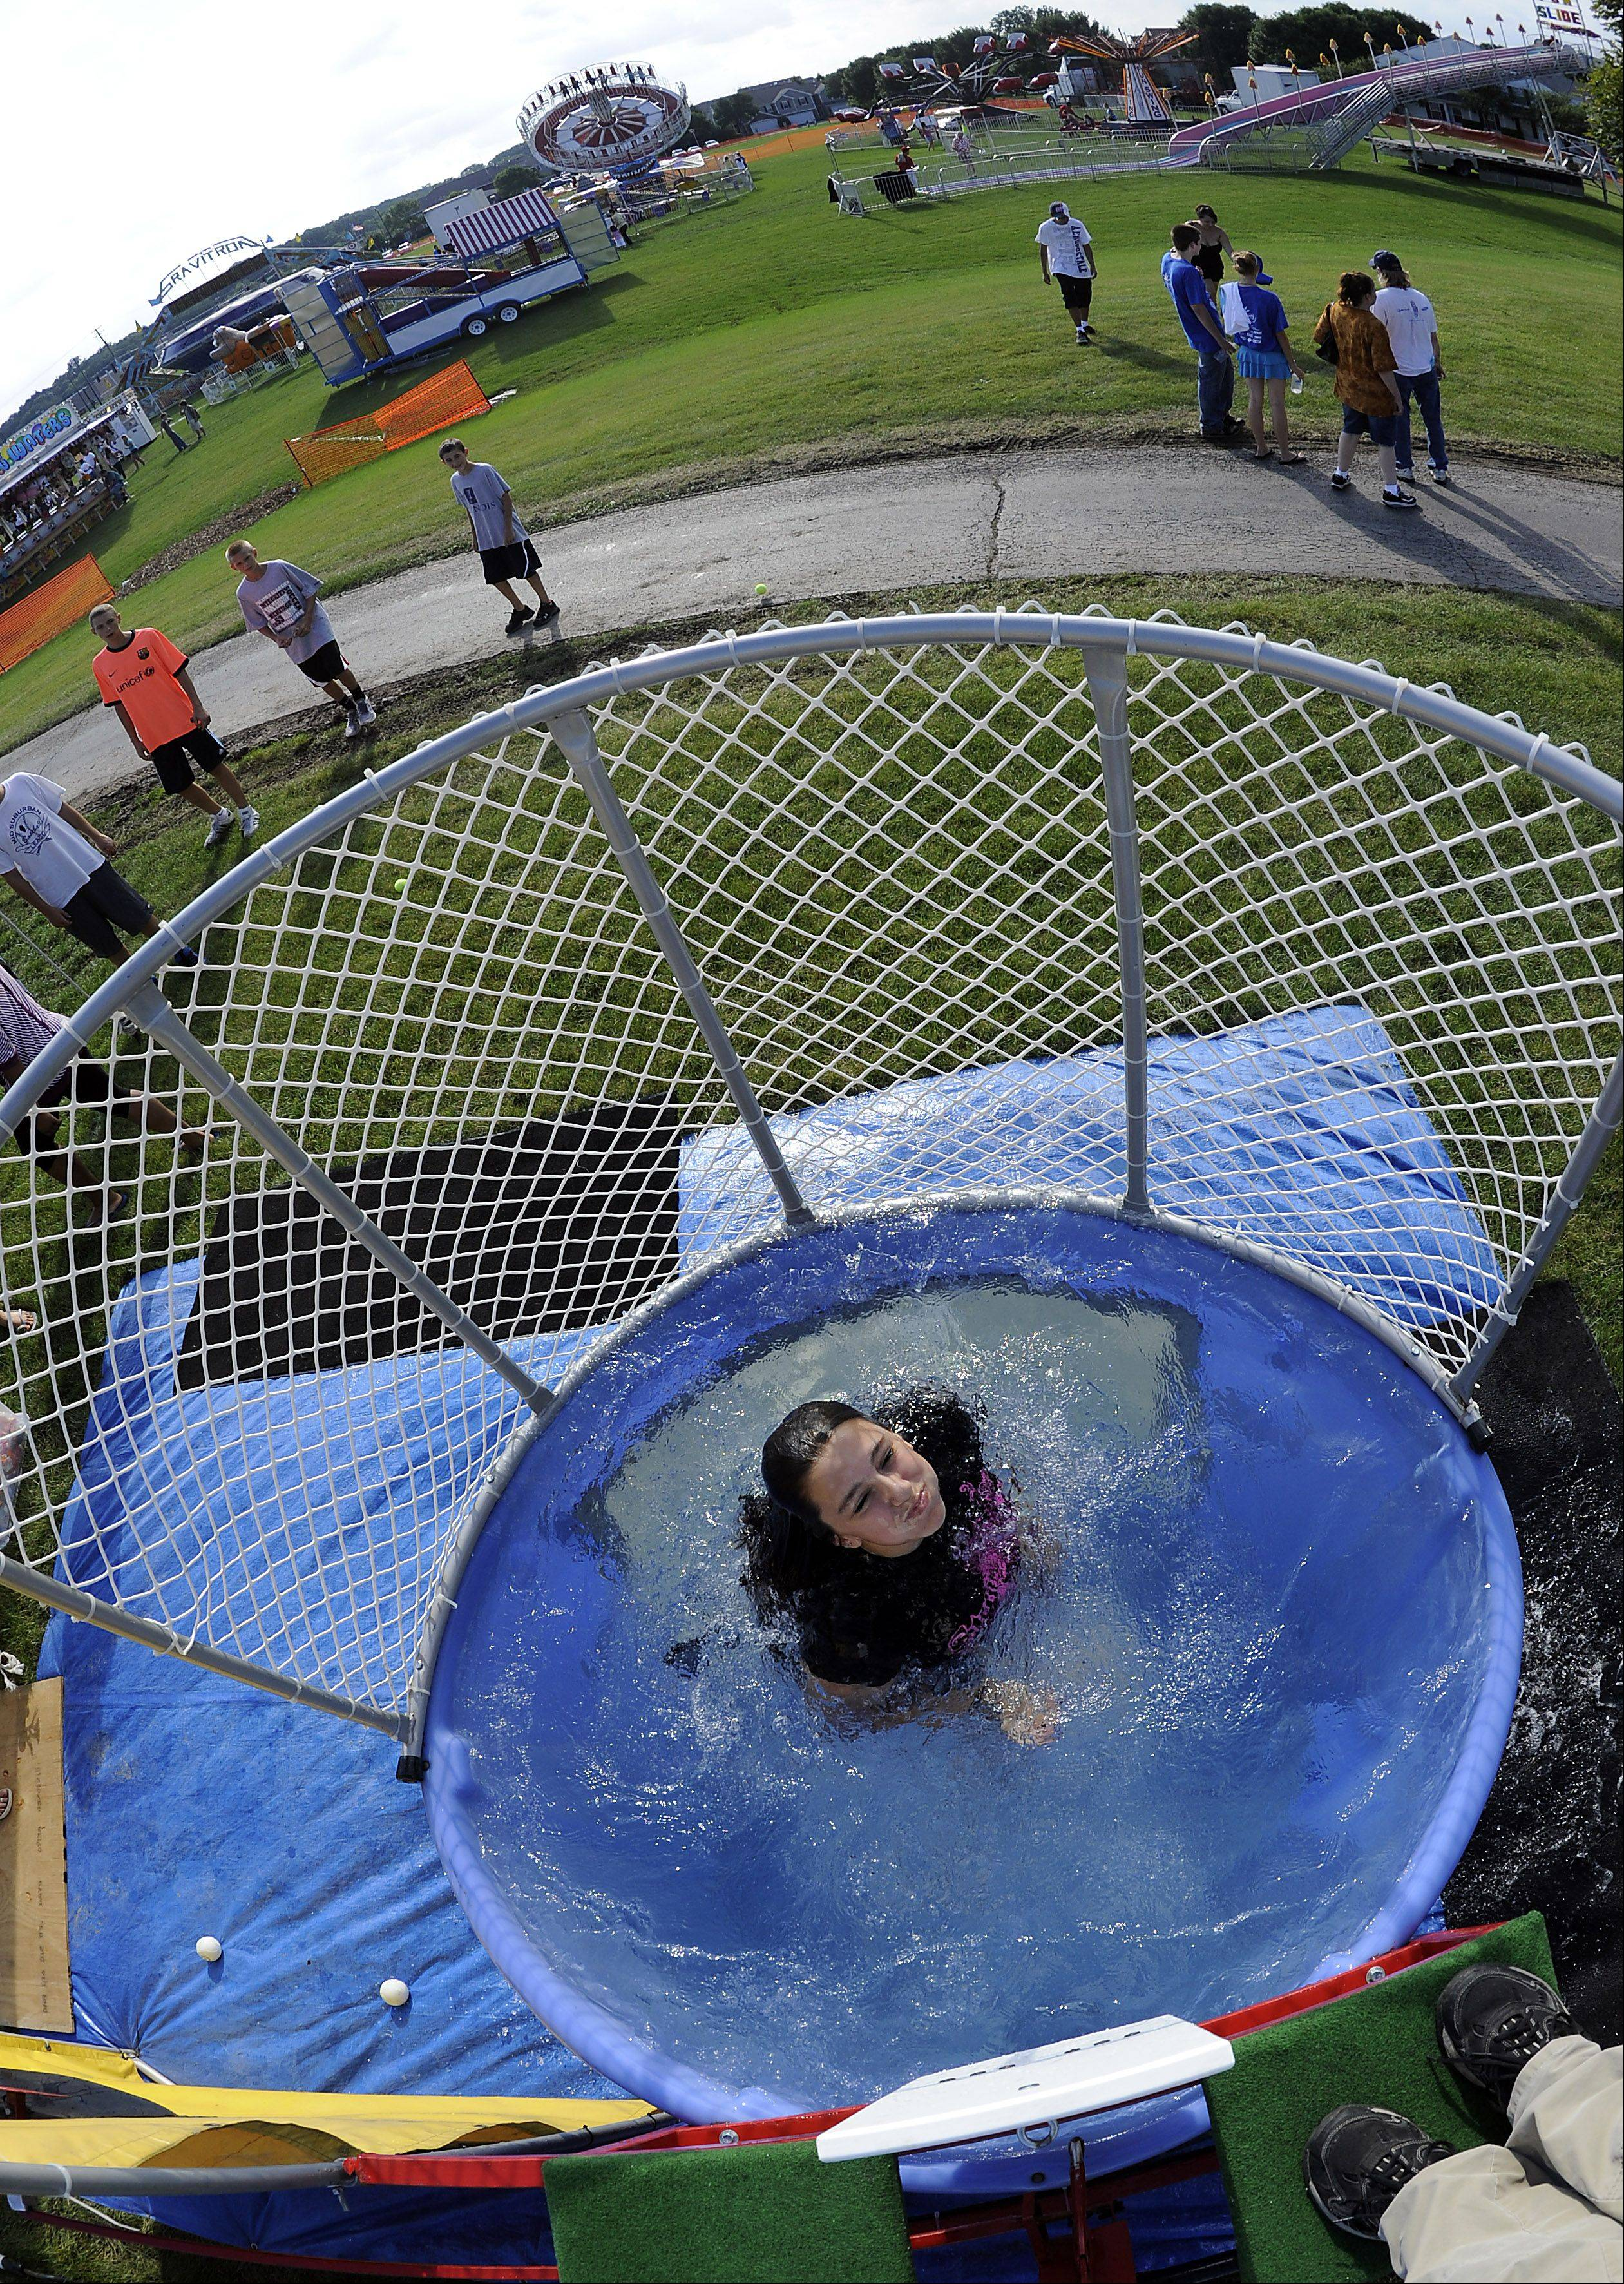 Noey Alagna, 14, of Streamwood mans the dunk tank, which was raising money for the Streamwood High School cheerleaders at the Streamwood Summer Celebration on Friday.